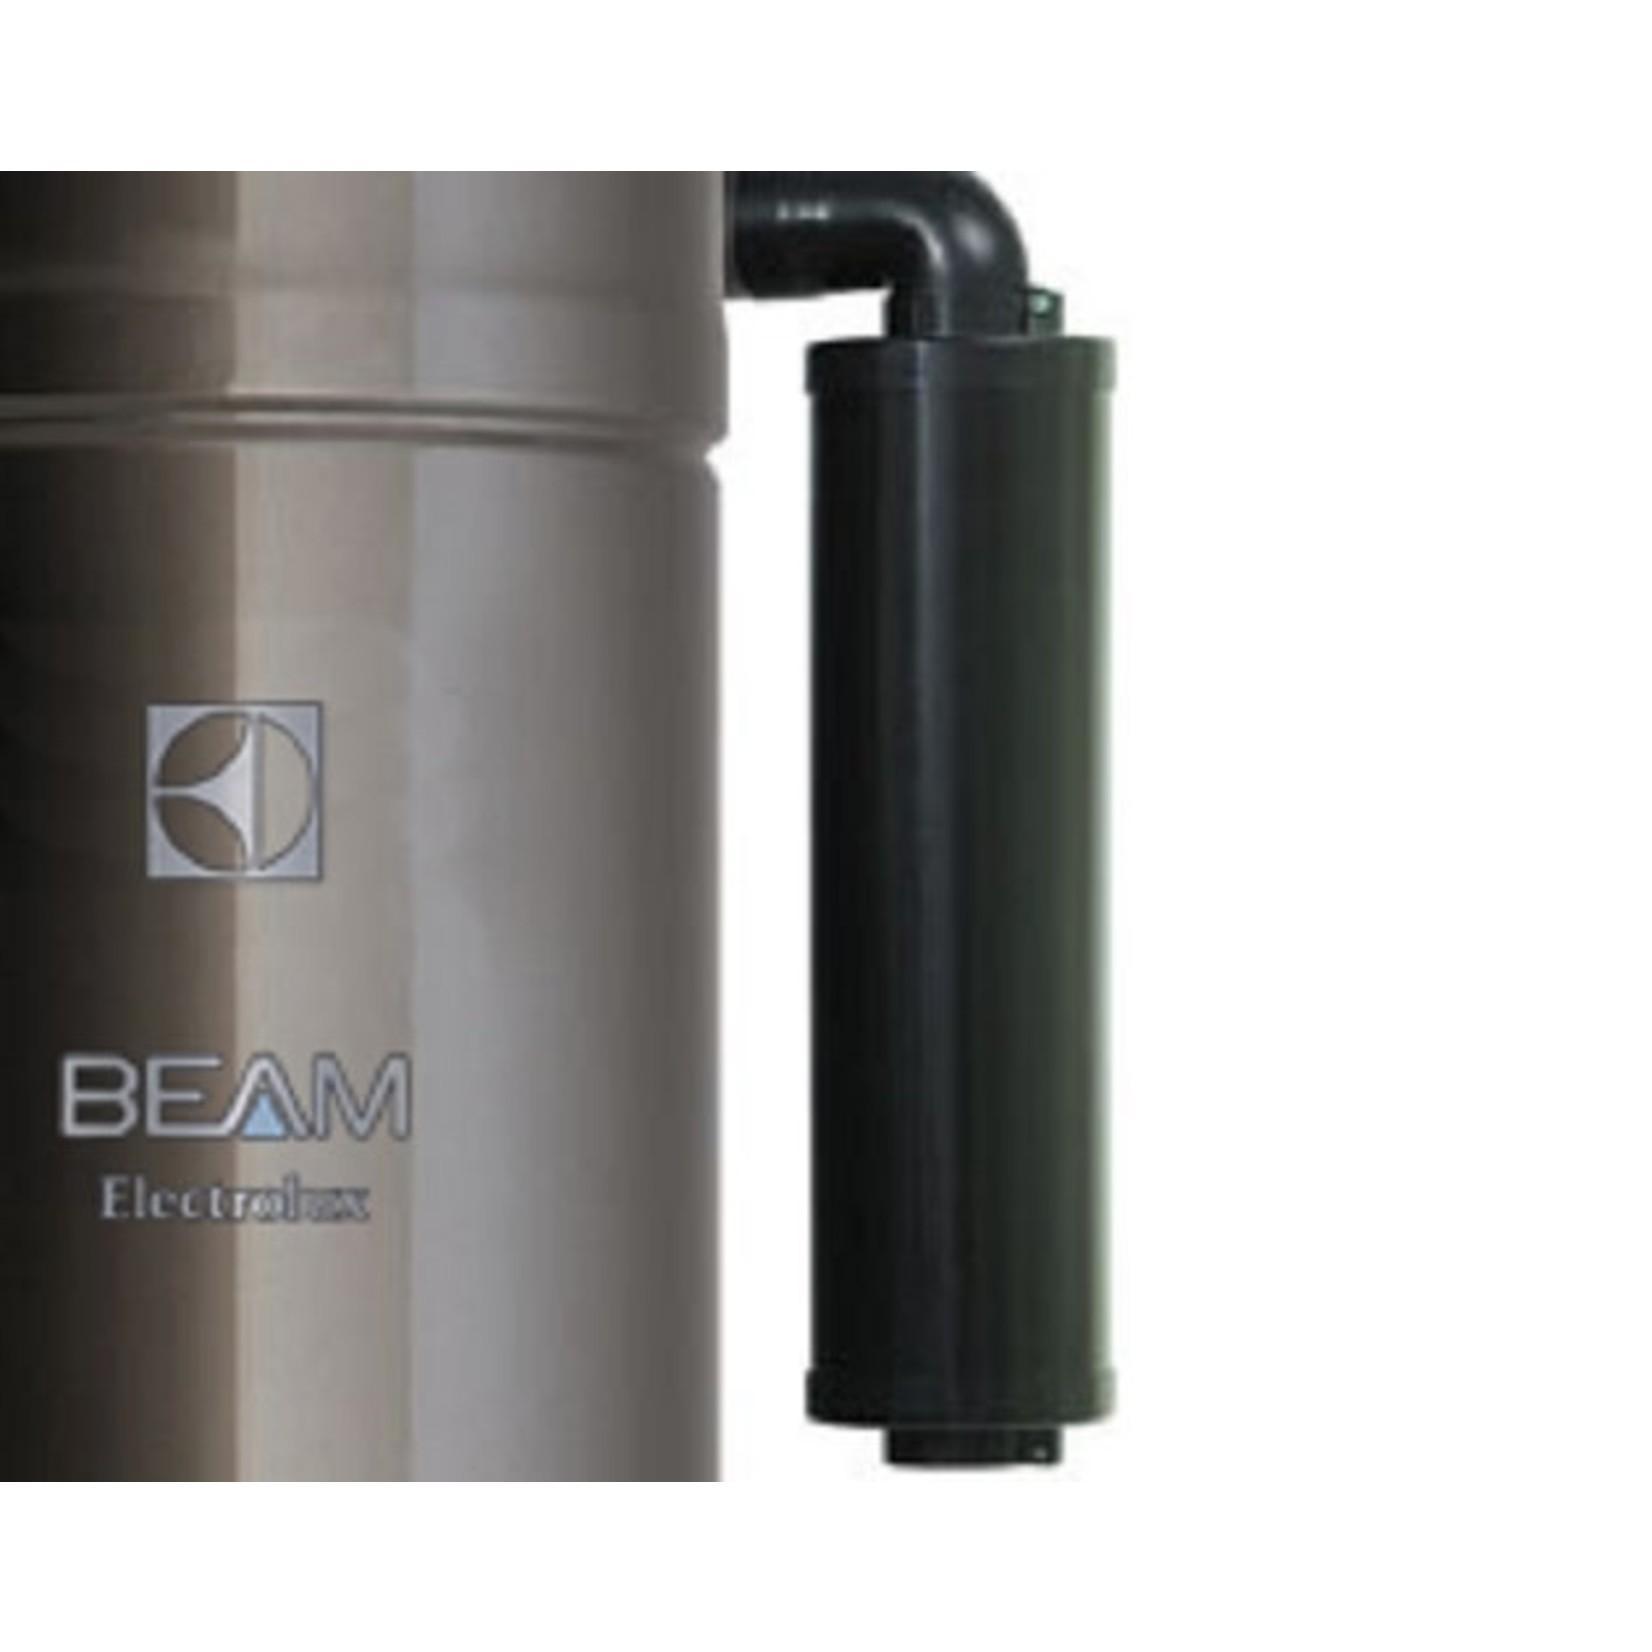 BEAM Beam Serenity Power Unit - 375 Blue Special Edition